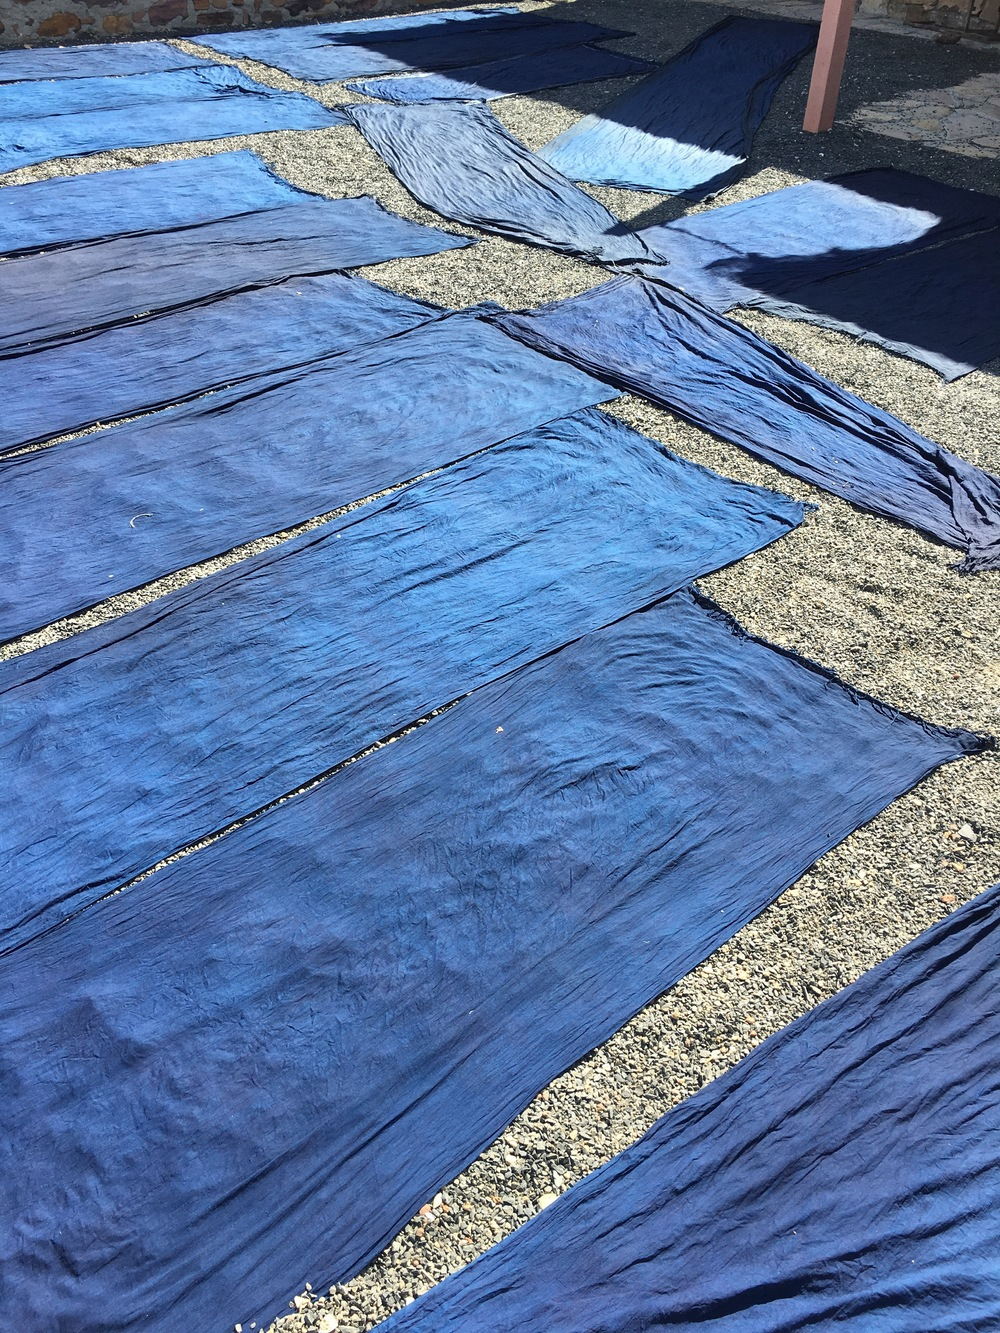 Naturally dyed indigo cloth drying in the sun